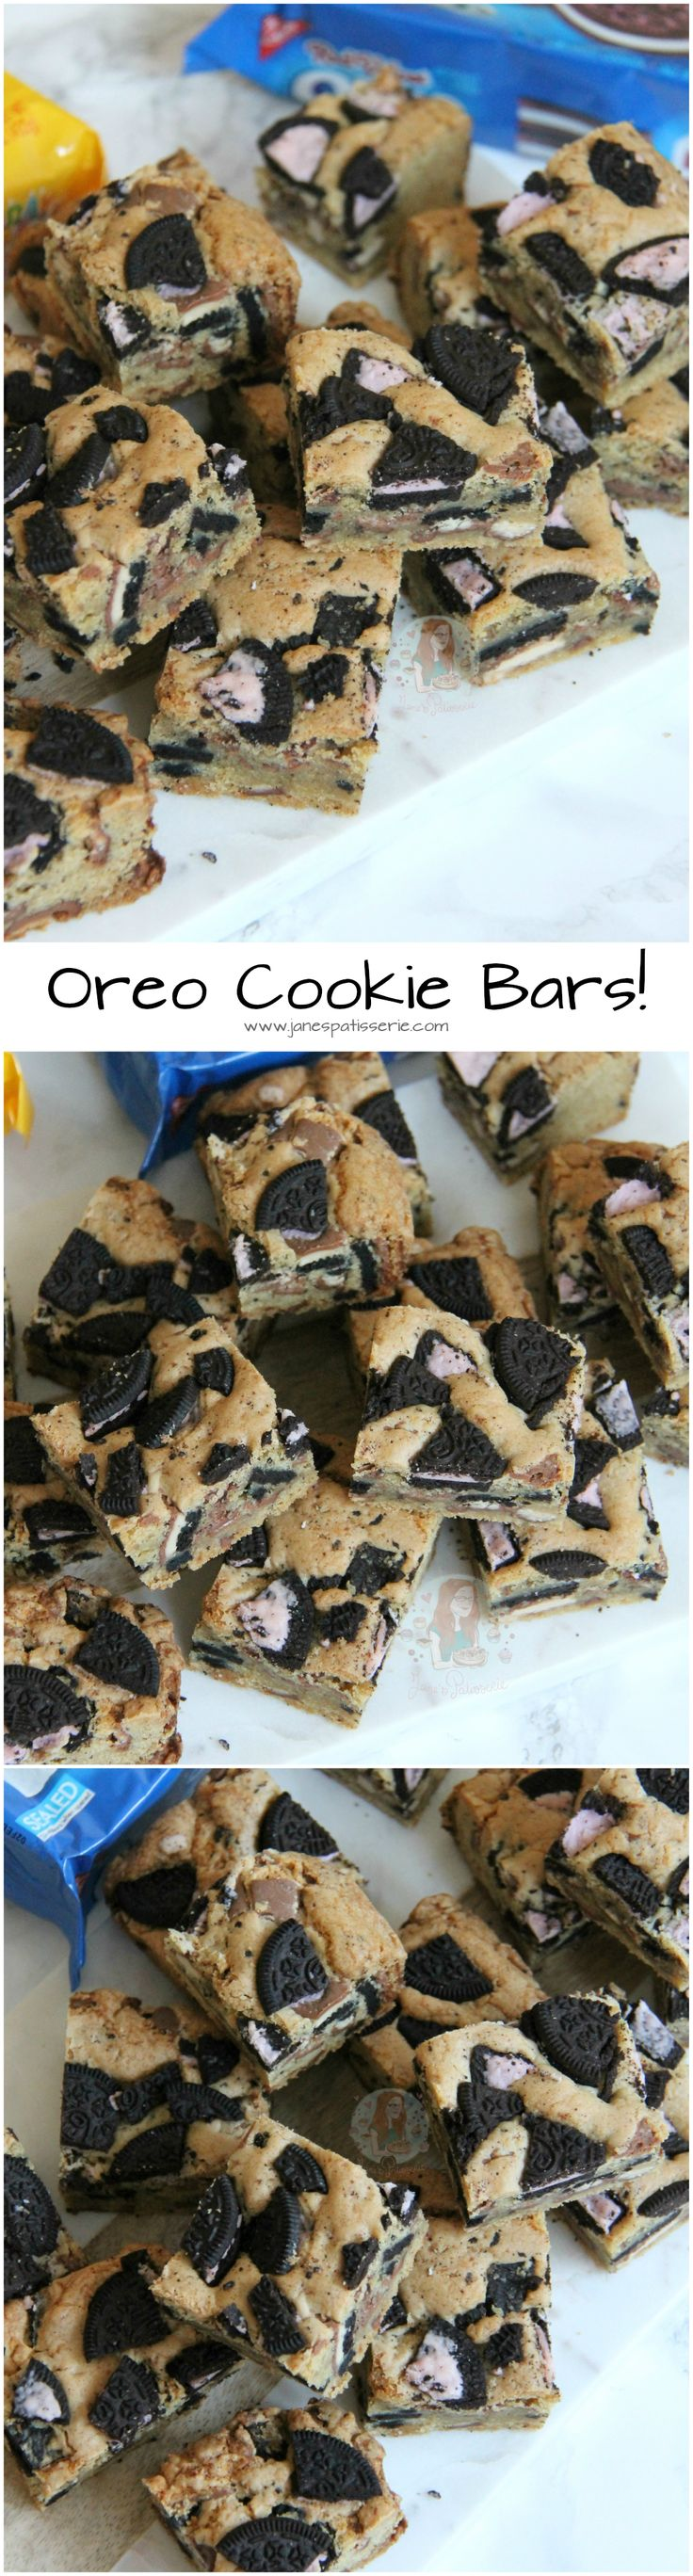 Oreo Cookie Bars! ❤️ Chocolate Oreo Cookie Traybake.. Seriously What Could Be Better than some Oreo Cookie Bars?